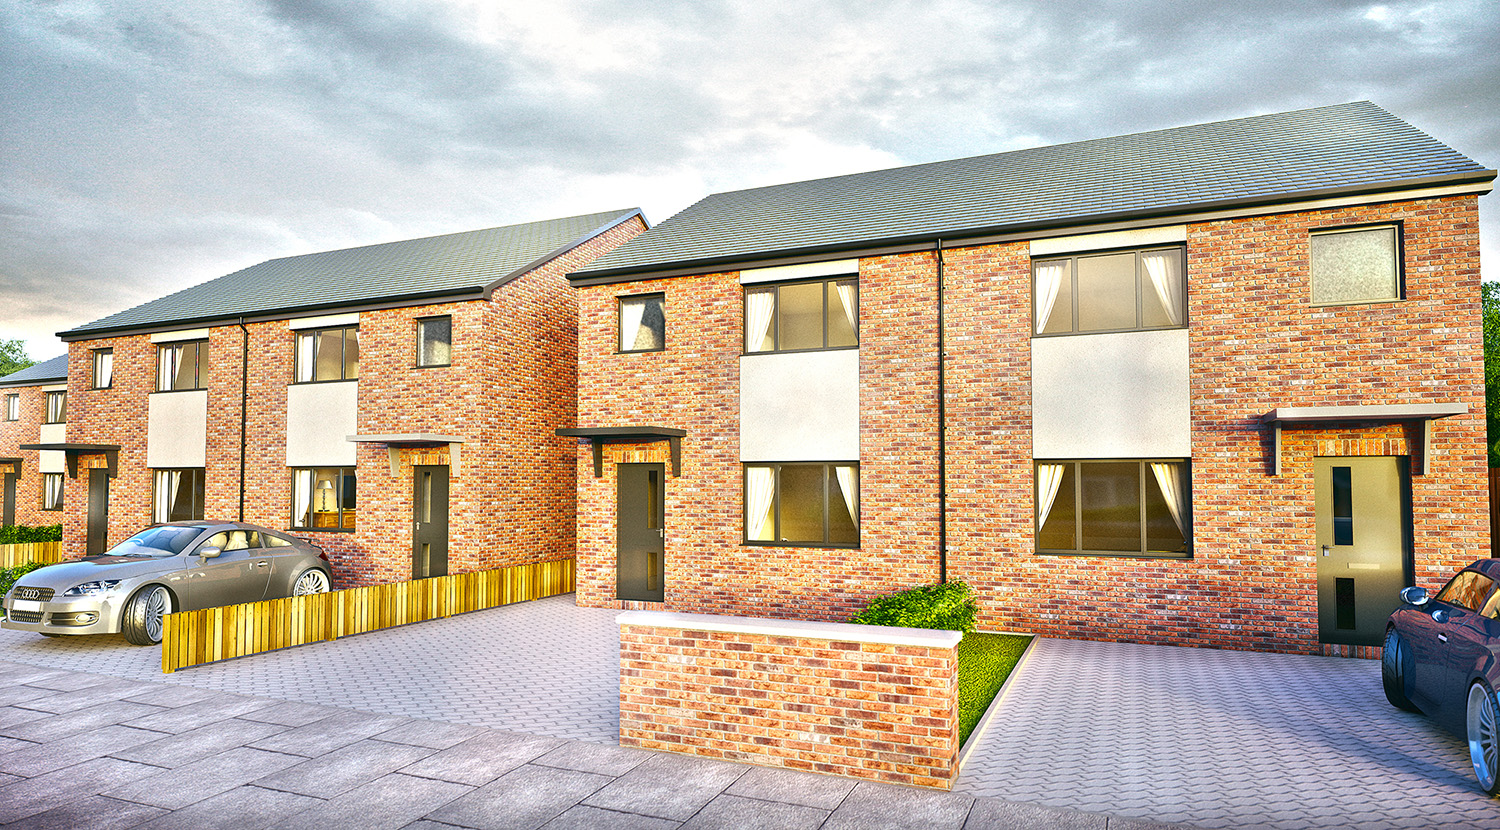 New Housing Development in on Laxton Road, Athersley